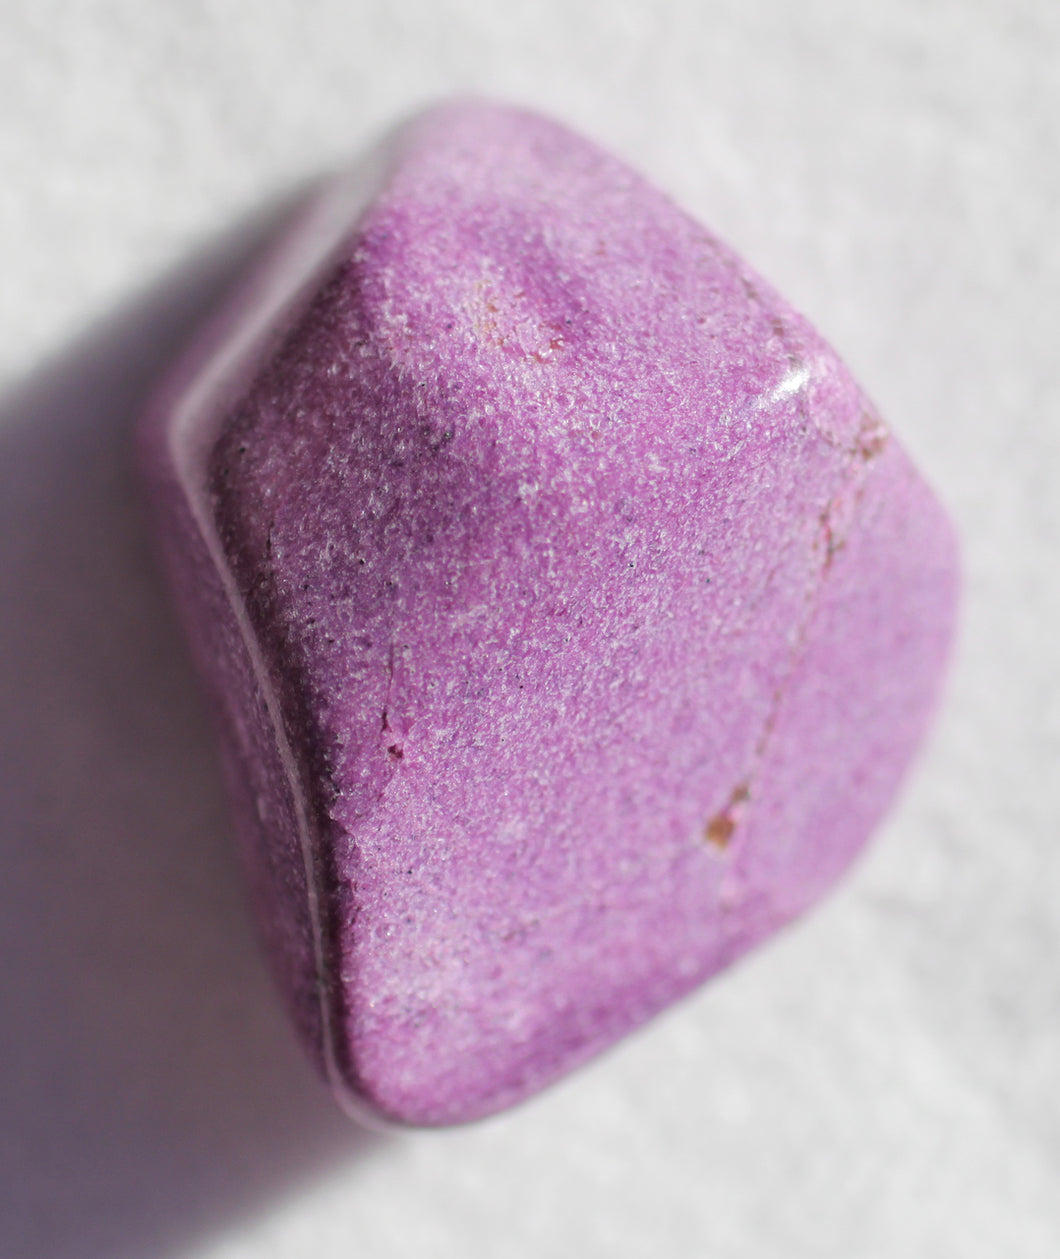 Stichtite Pocket Stone for clarity.